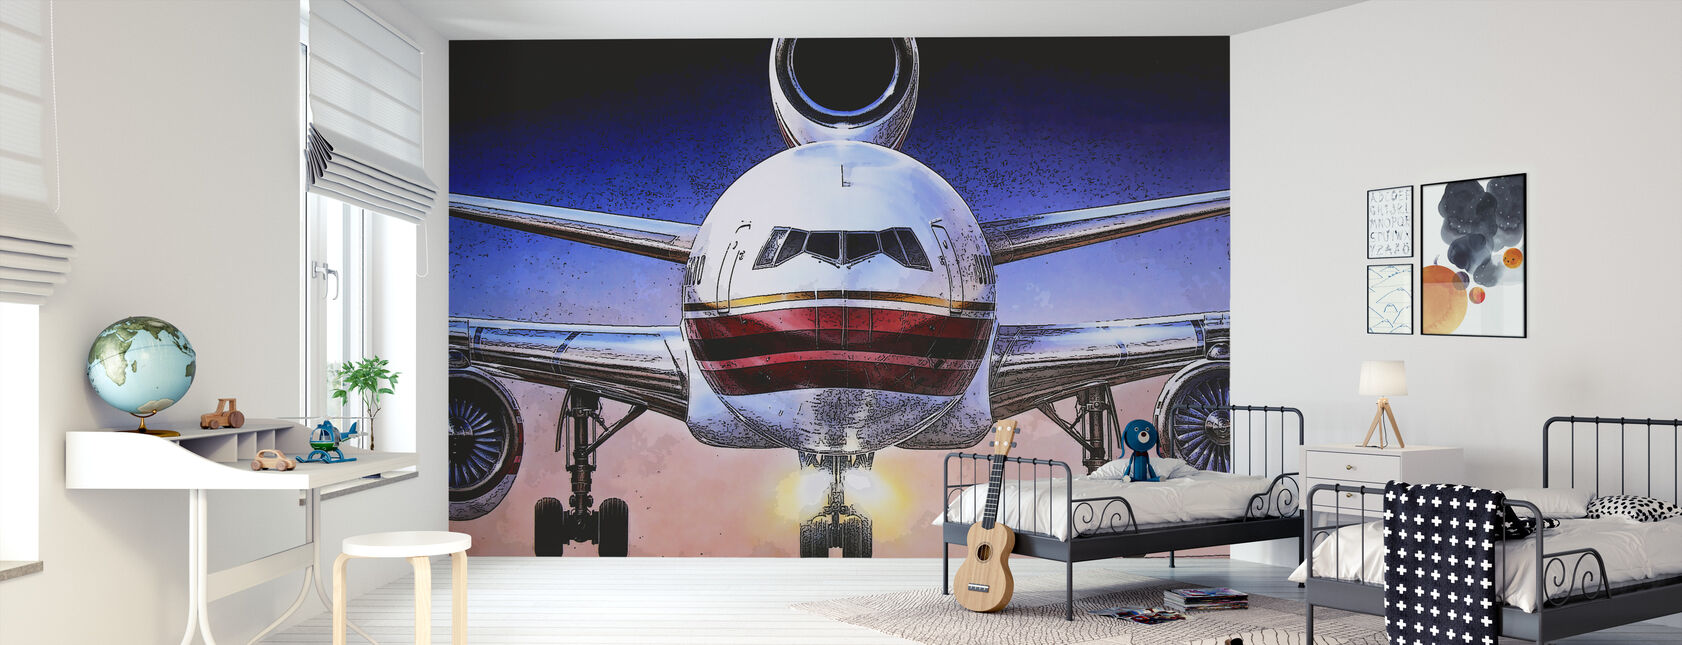 Airbus poster - Wallpaper - Kids Room